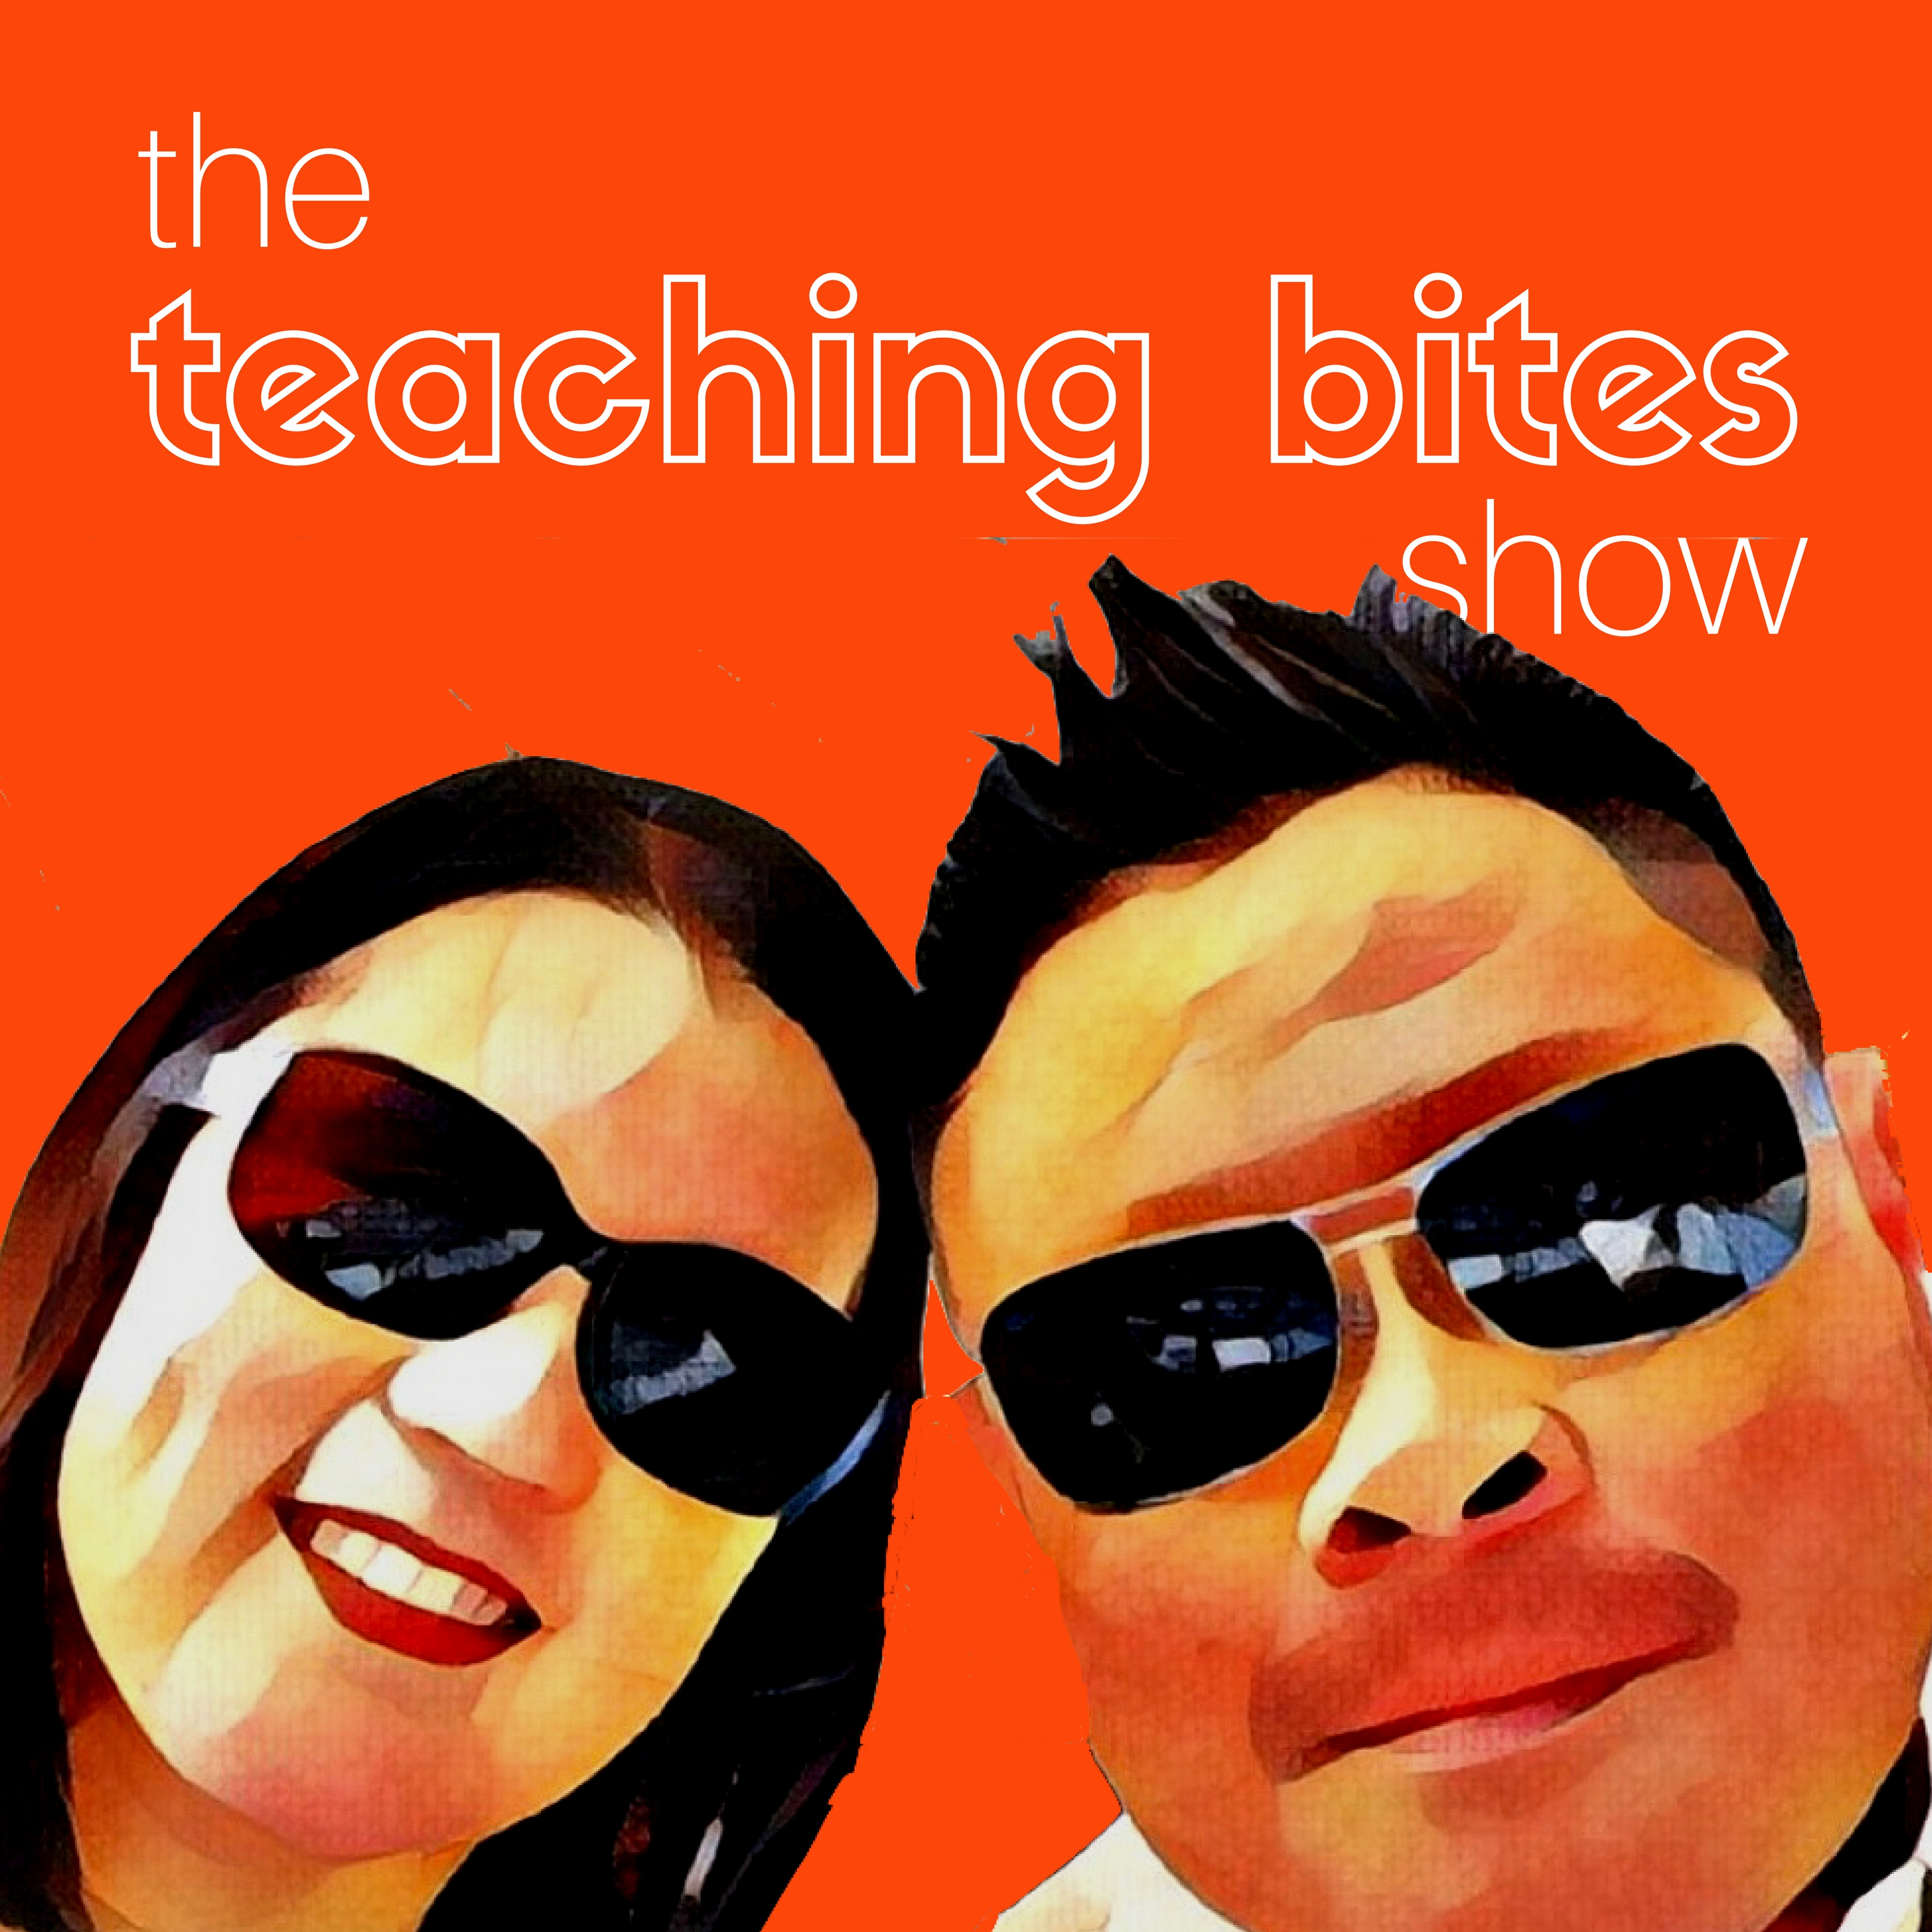 The Teaching Bites Show | The Unprofessional Development You're Looking For!